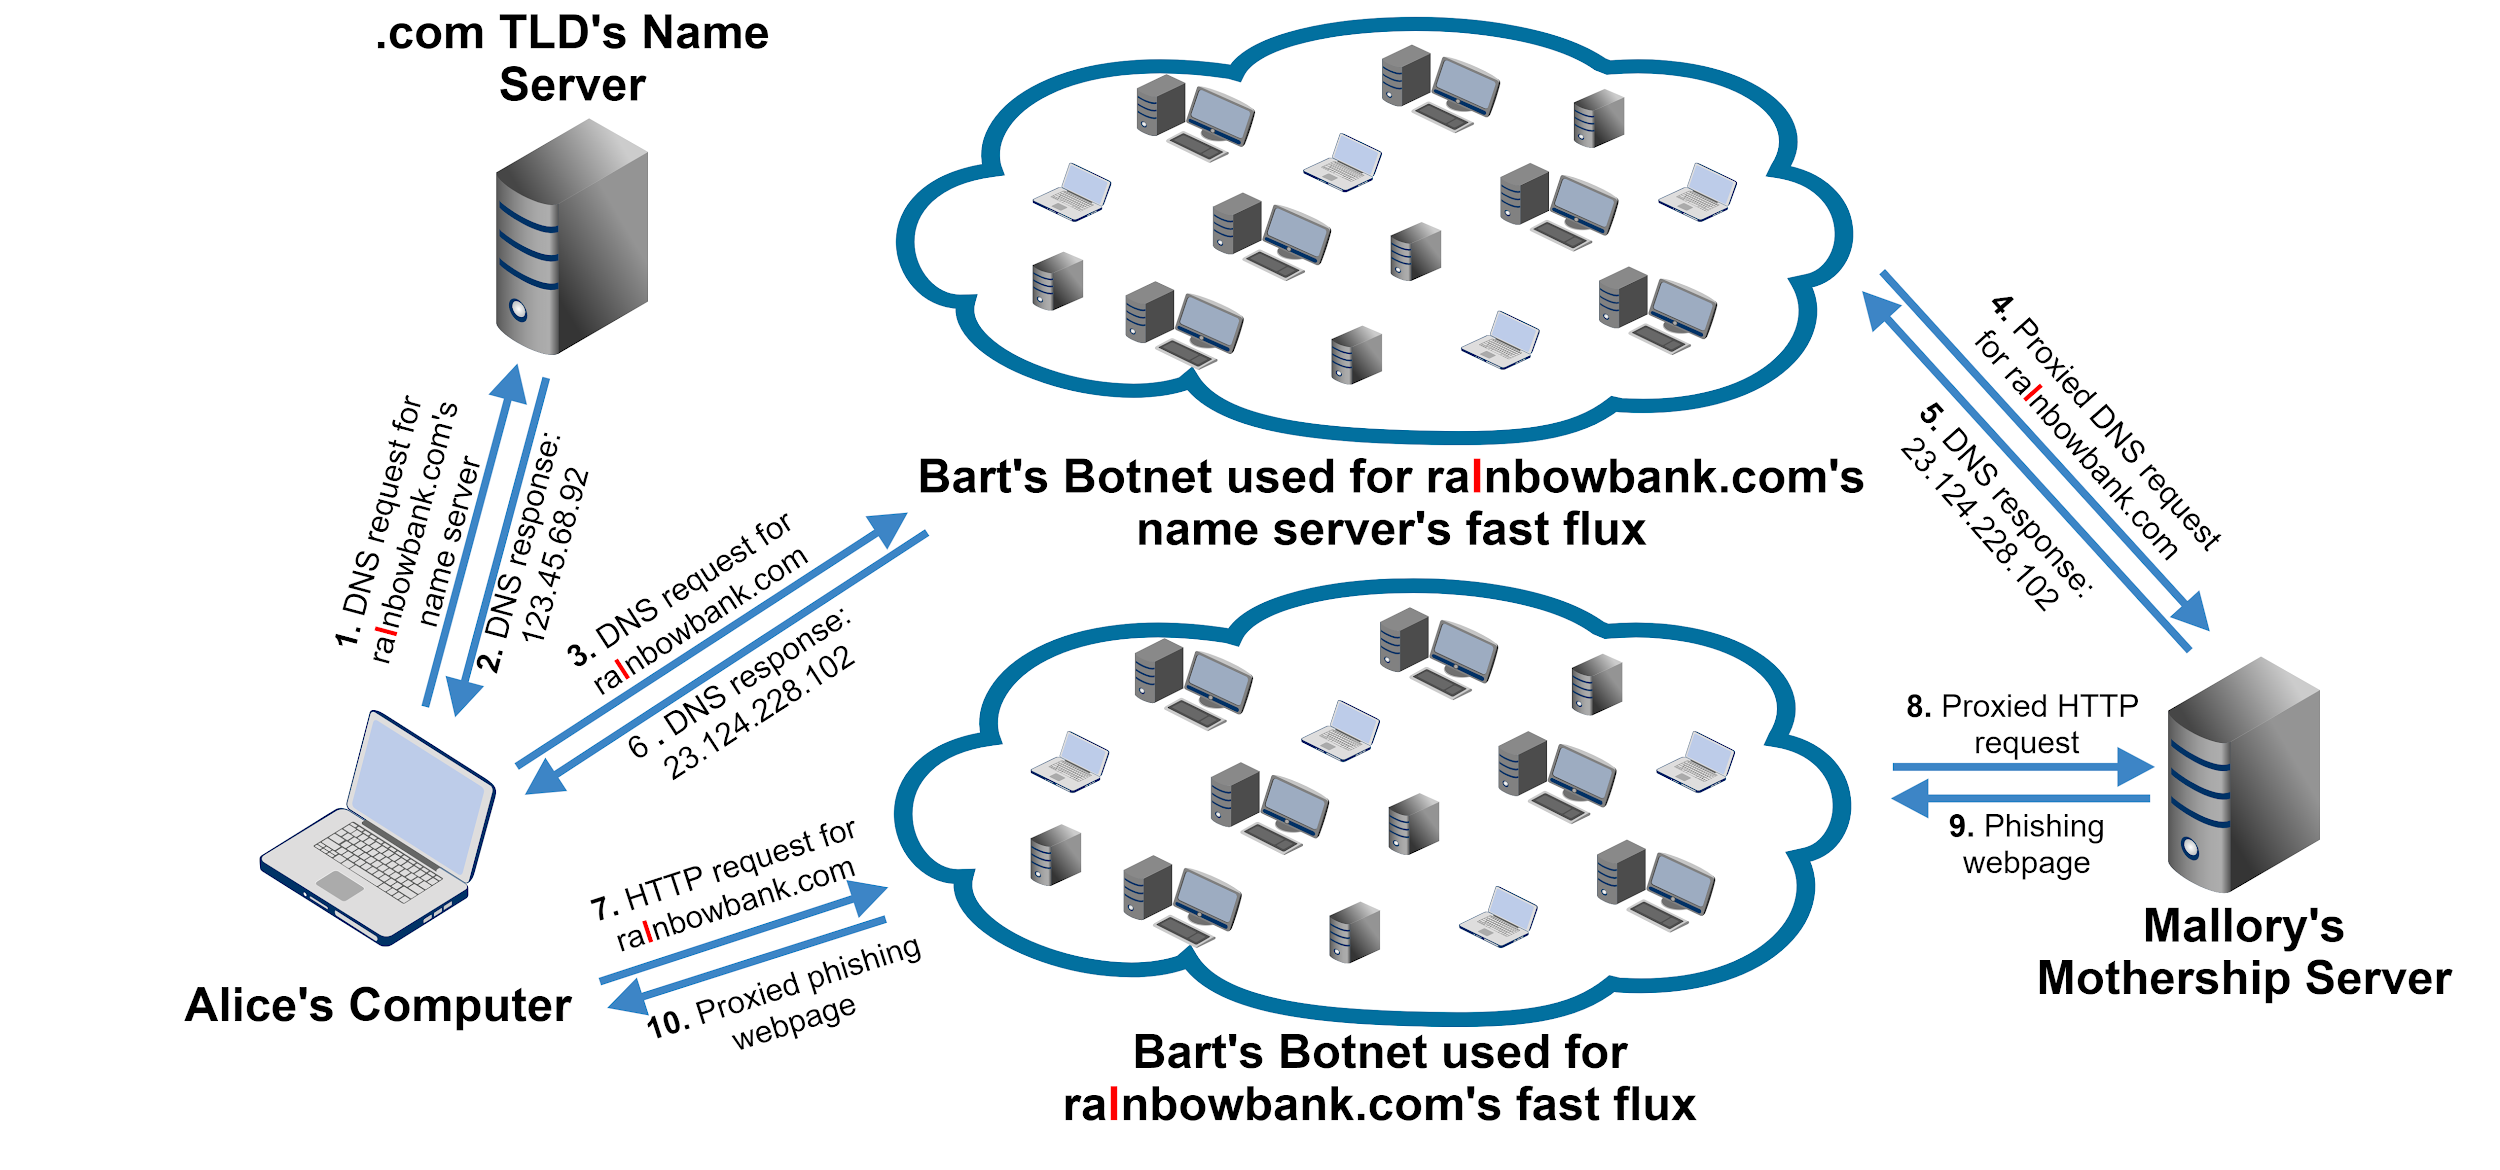 An example of a double flux architecture. 1) DNS request for domain name's server sent from victim computer to .com TLD's name server; 2) Response from .com TLD's name server to victim computer; 3) DNS request for domain name sent from victim computer to botnet used for name server's fast flux; 4) proxied DNS request sent to attacker's mothership server; 5) DNS response sent from mothership server to botnet used for name server's fast flux; 6) DNS response from botnet to victim computer; 7) HTTP request for domain name from victim computer to botnet used for phishing domain name's fast flux; 8) proxied HTTP request from phishing domain name's botnet to attacker's mothership server; 9) phishing webpage sent from attacker's mothership server to botnet used for domain name's fast flux; 10) proxied phishing webpage sent from botnet to victim's computer